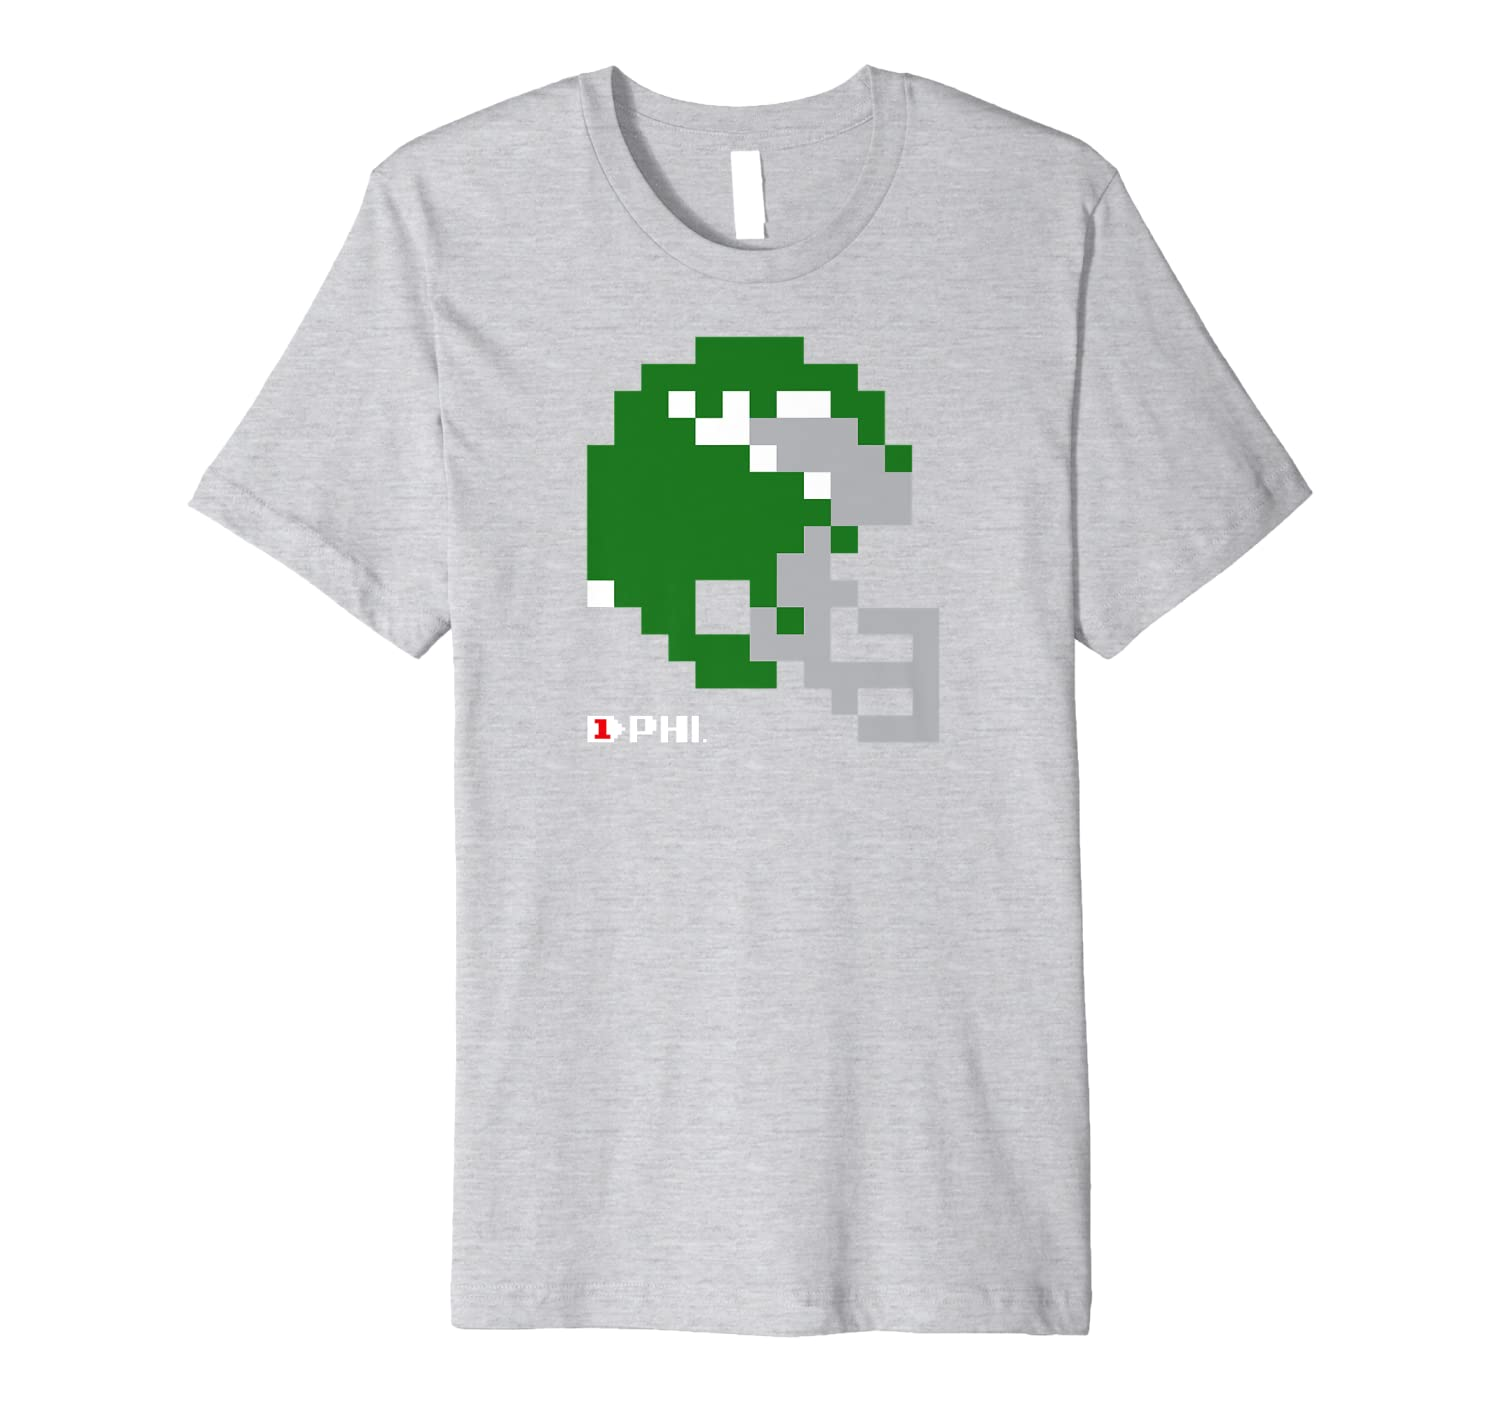 8-Bit Retro Vintage Video Game T Shirt Philly Football-TH